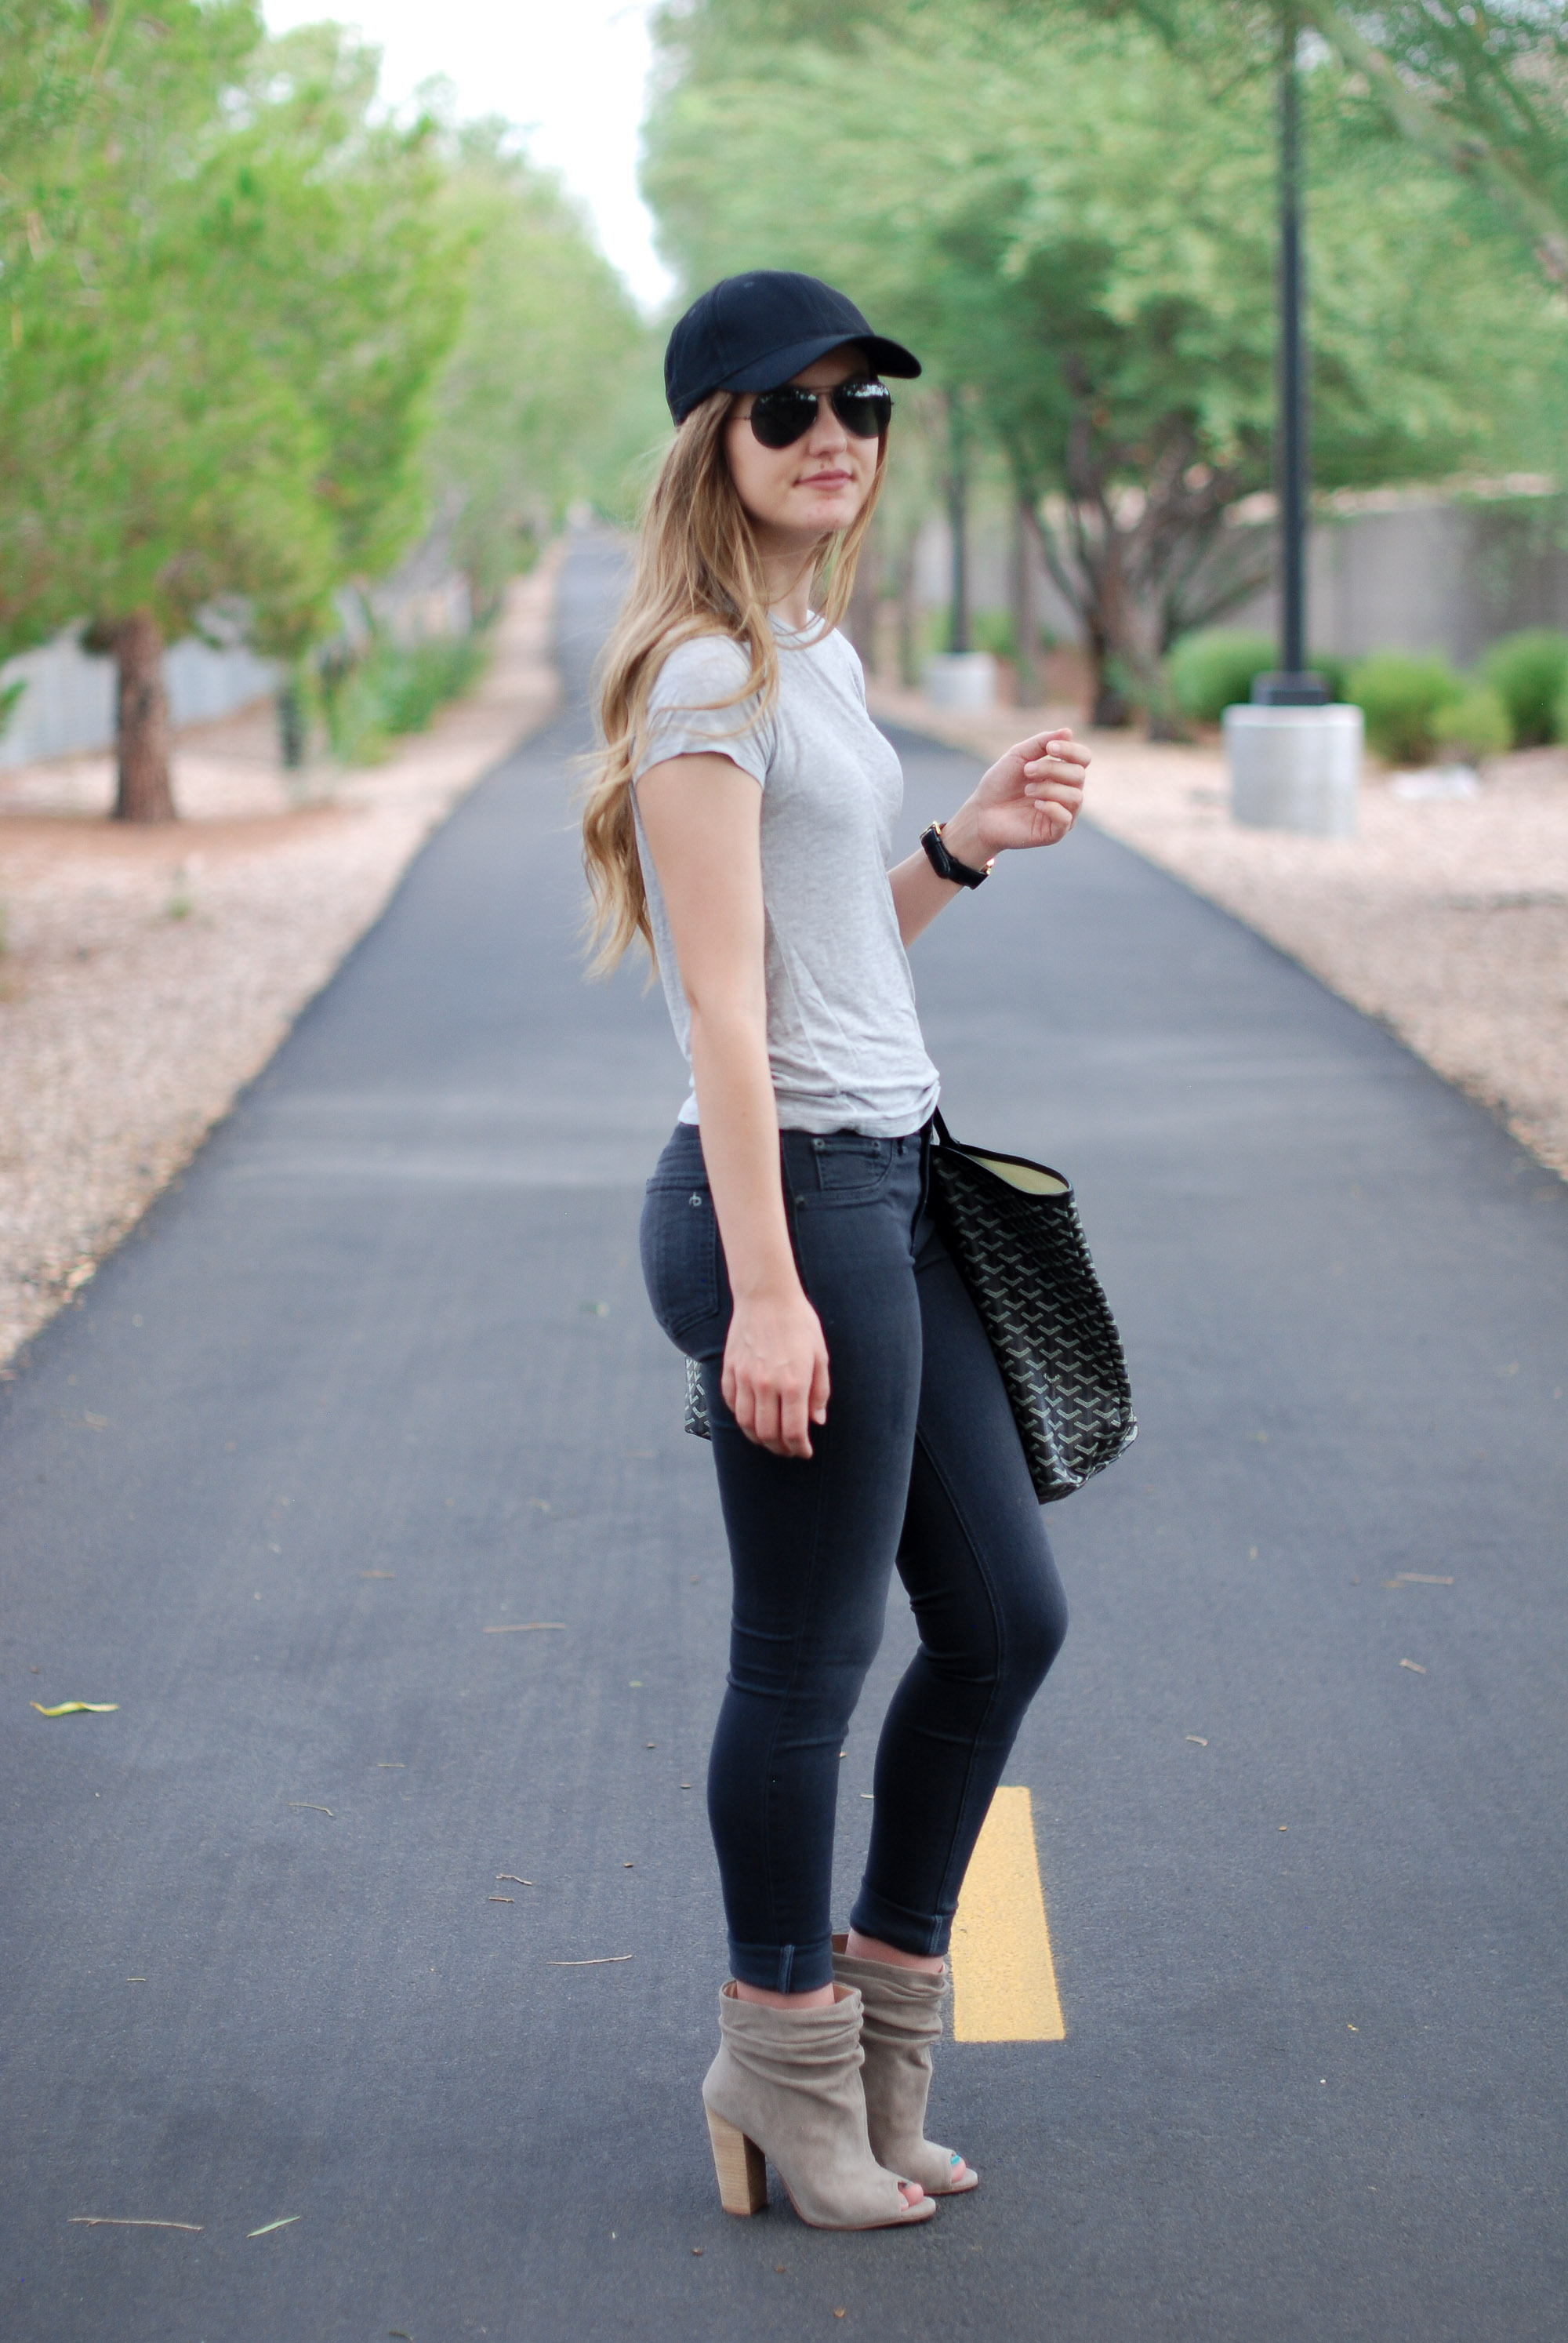 Sincerely Hales - A Fashion and Style Blog